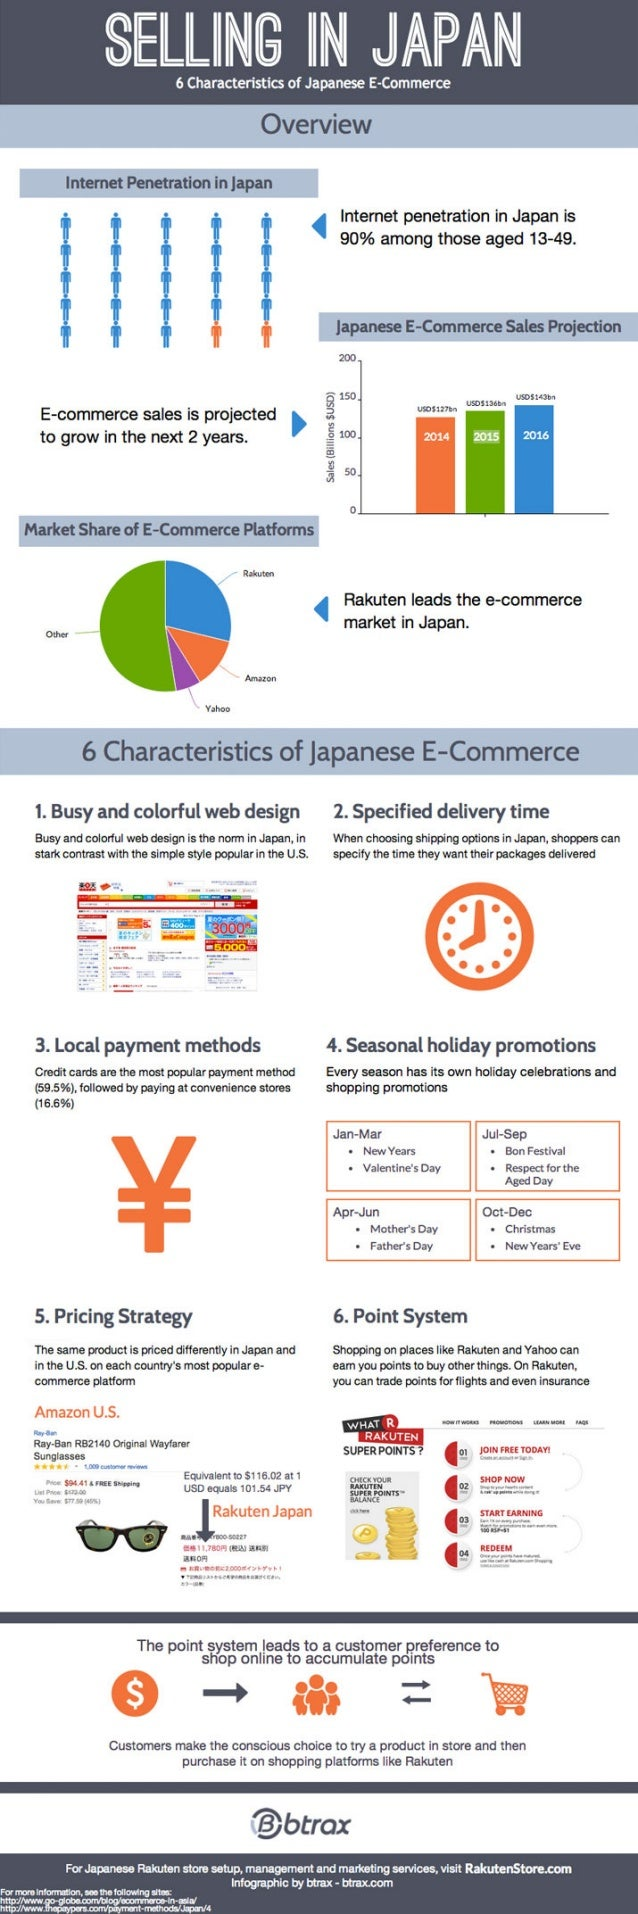 [INFOGRAPHIC] Selling in Japan: 6 Characteristics of Japanese E-Commerce